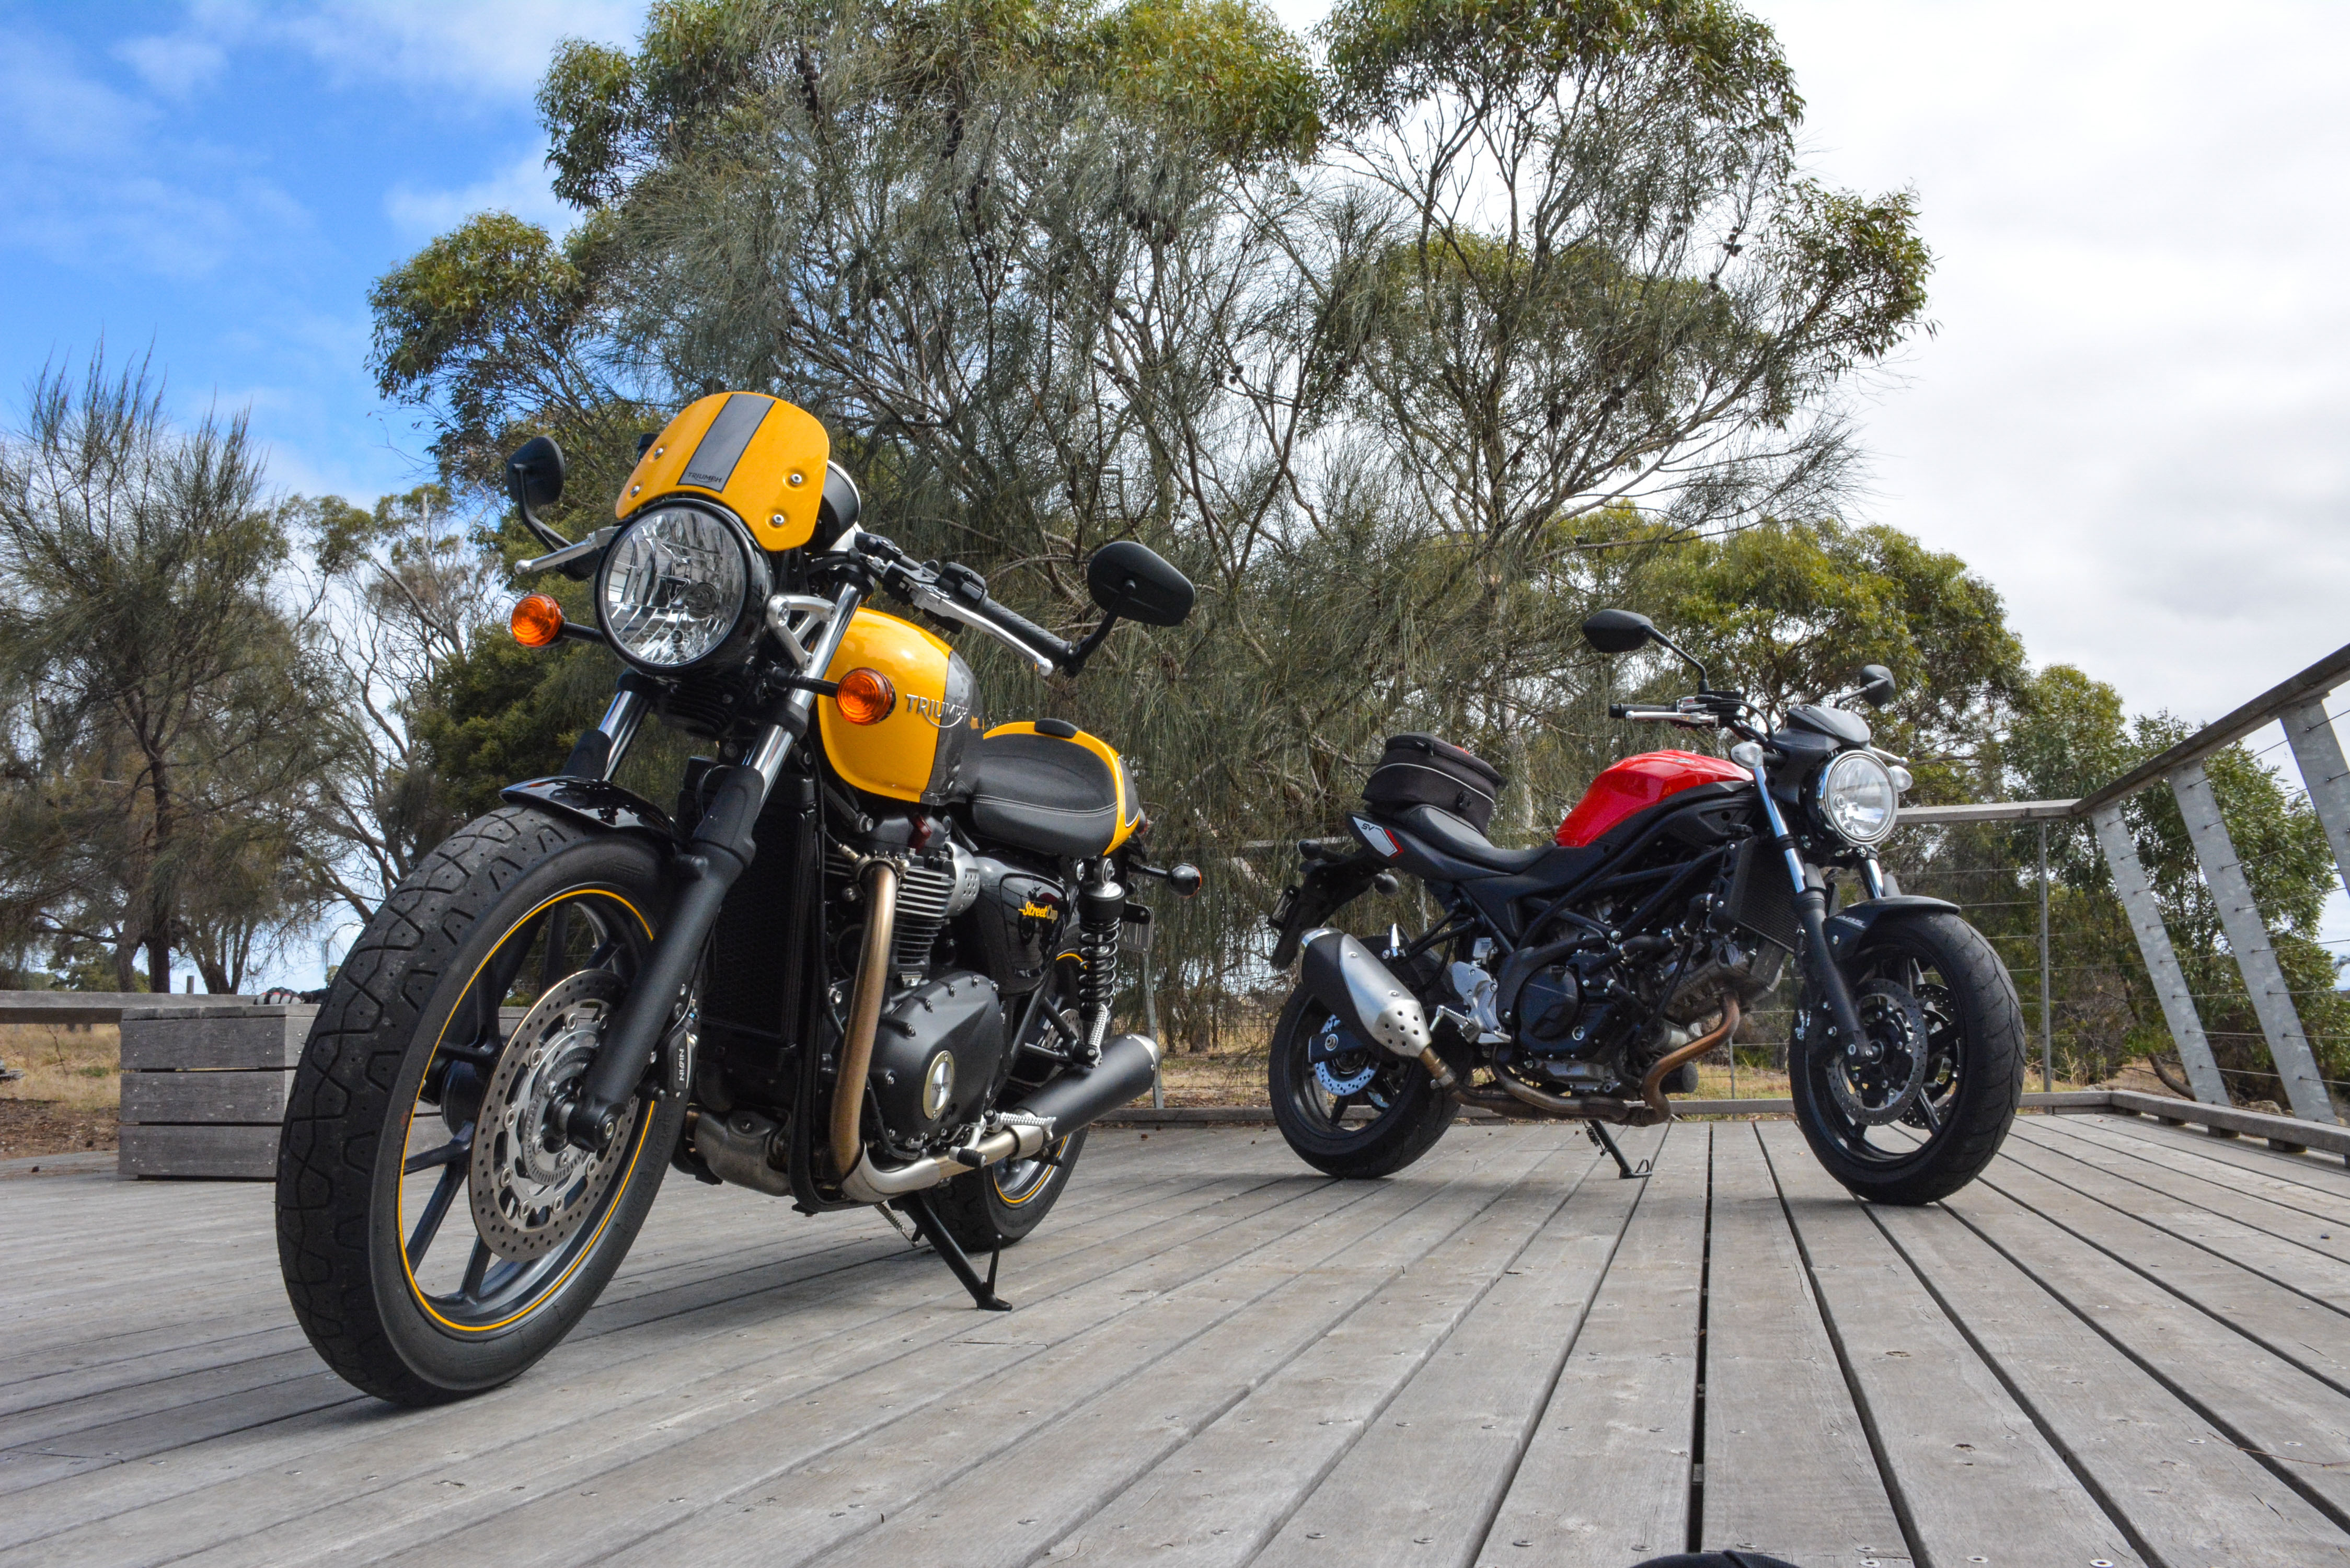 Long term test: Suzuki SV650 and Triumph Street Cup